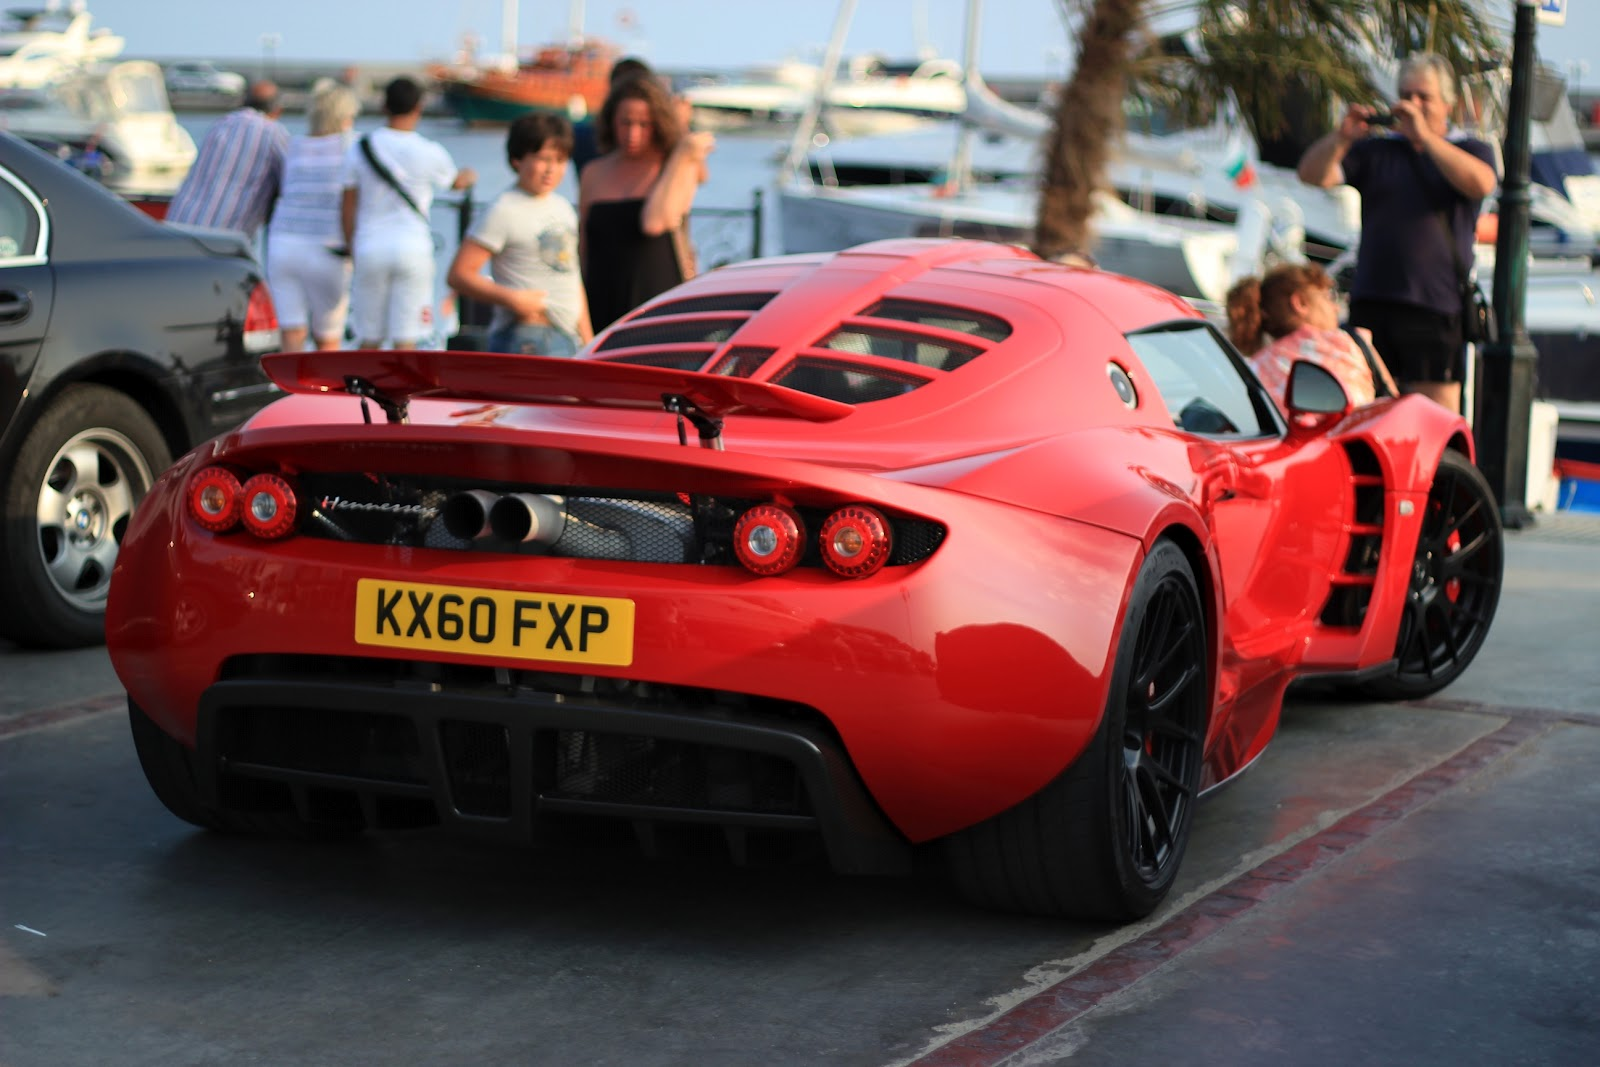 interesting is to see the hypercar running on UK registration plates